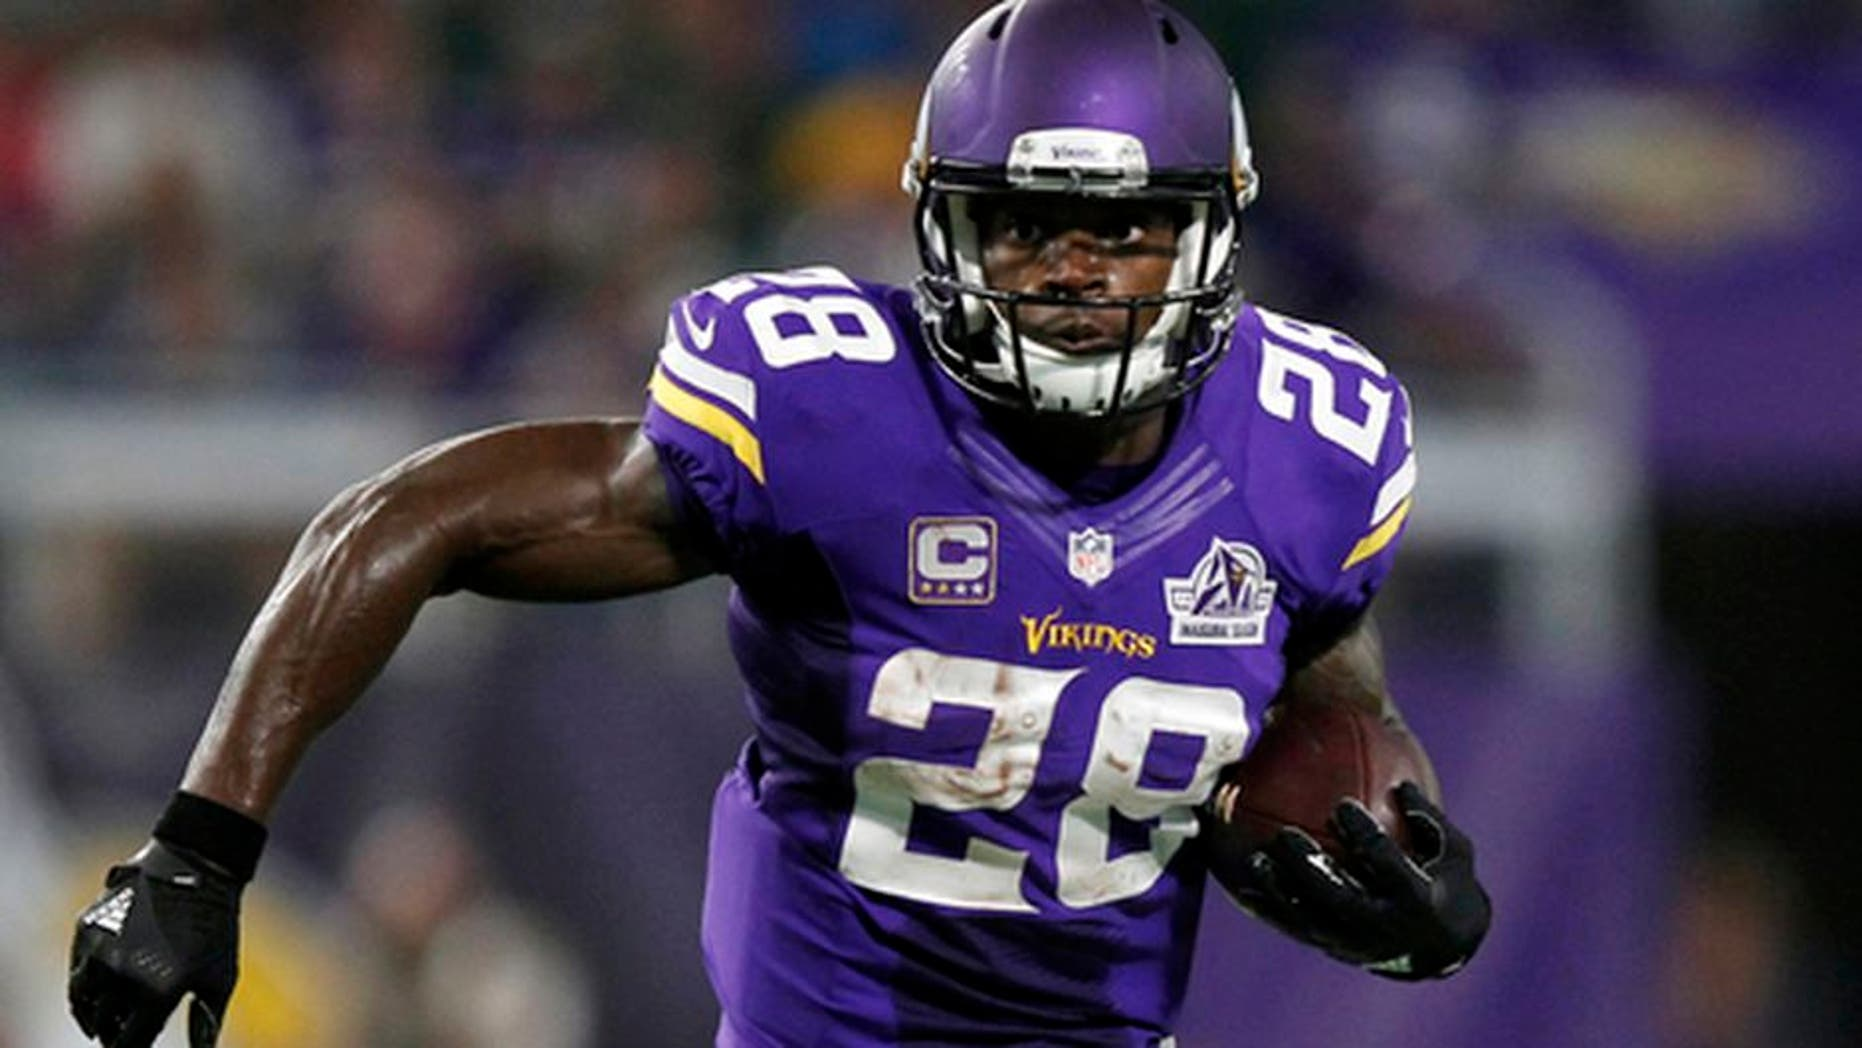 FILE - In this Sept. 18, 2016, file photo, Minnesota Vikings running back Adrian Peterson carries the ball during the team's NFL football game against the Green Bay Packers in Minneapolis. A person with knowledge of the situation tells The Associated Press that free agent running back Peterson has visited with the Seattle Seahawks. The person spoke to the AP on condition of anonymity because the details werent being made public on Sunday, March 12, when Peterson was at Seahawks headquarters. This was his first in-person meeting with a team since the Vikings declined their option on his contract for 2017 and made him a free agent for the first time. (AP Photo/Andy Clayton-King, File)